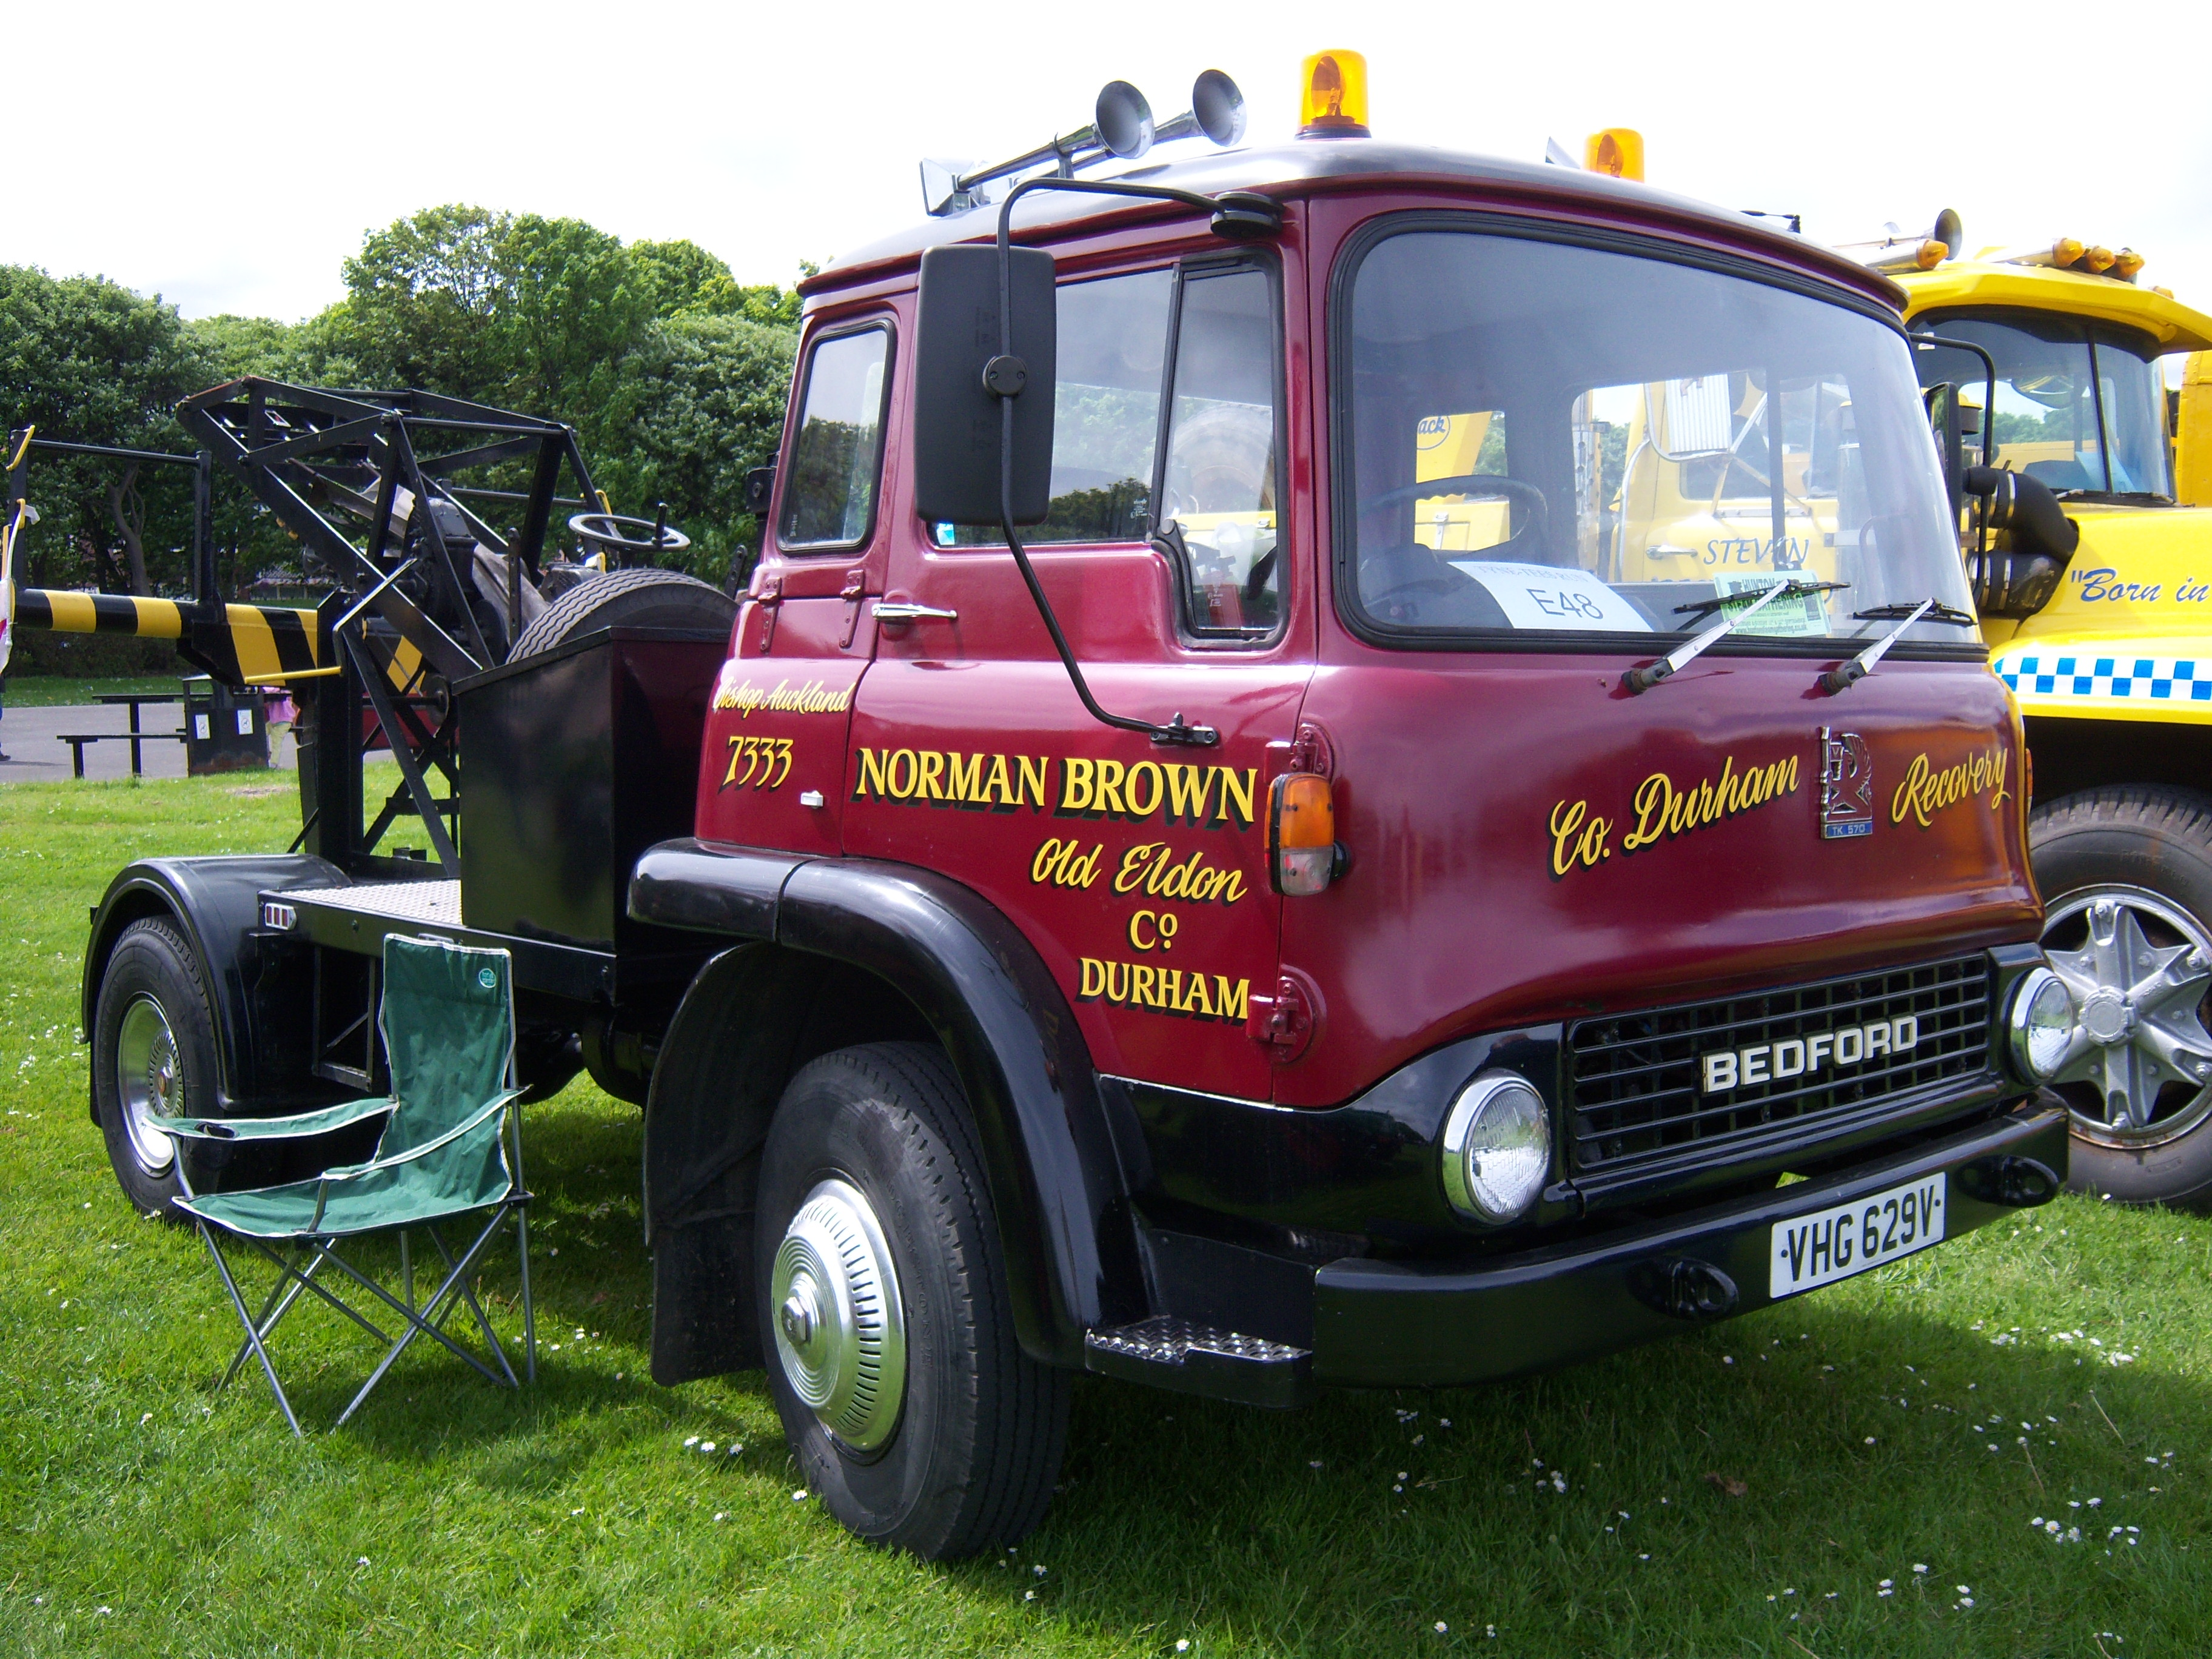 Ford Work Trucks File:1979 Bedford TK 560 (VHG 629V) recovery truck, 2012 ...